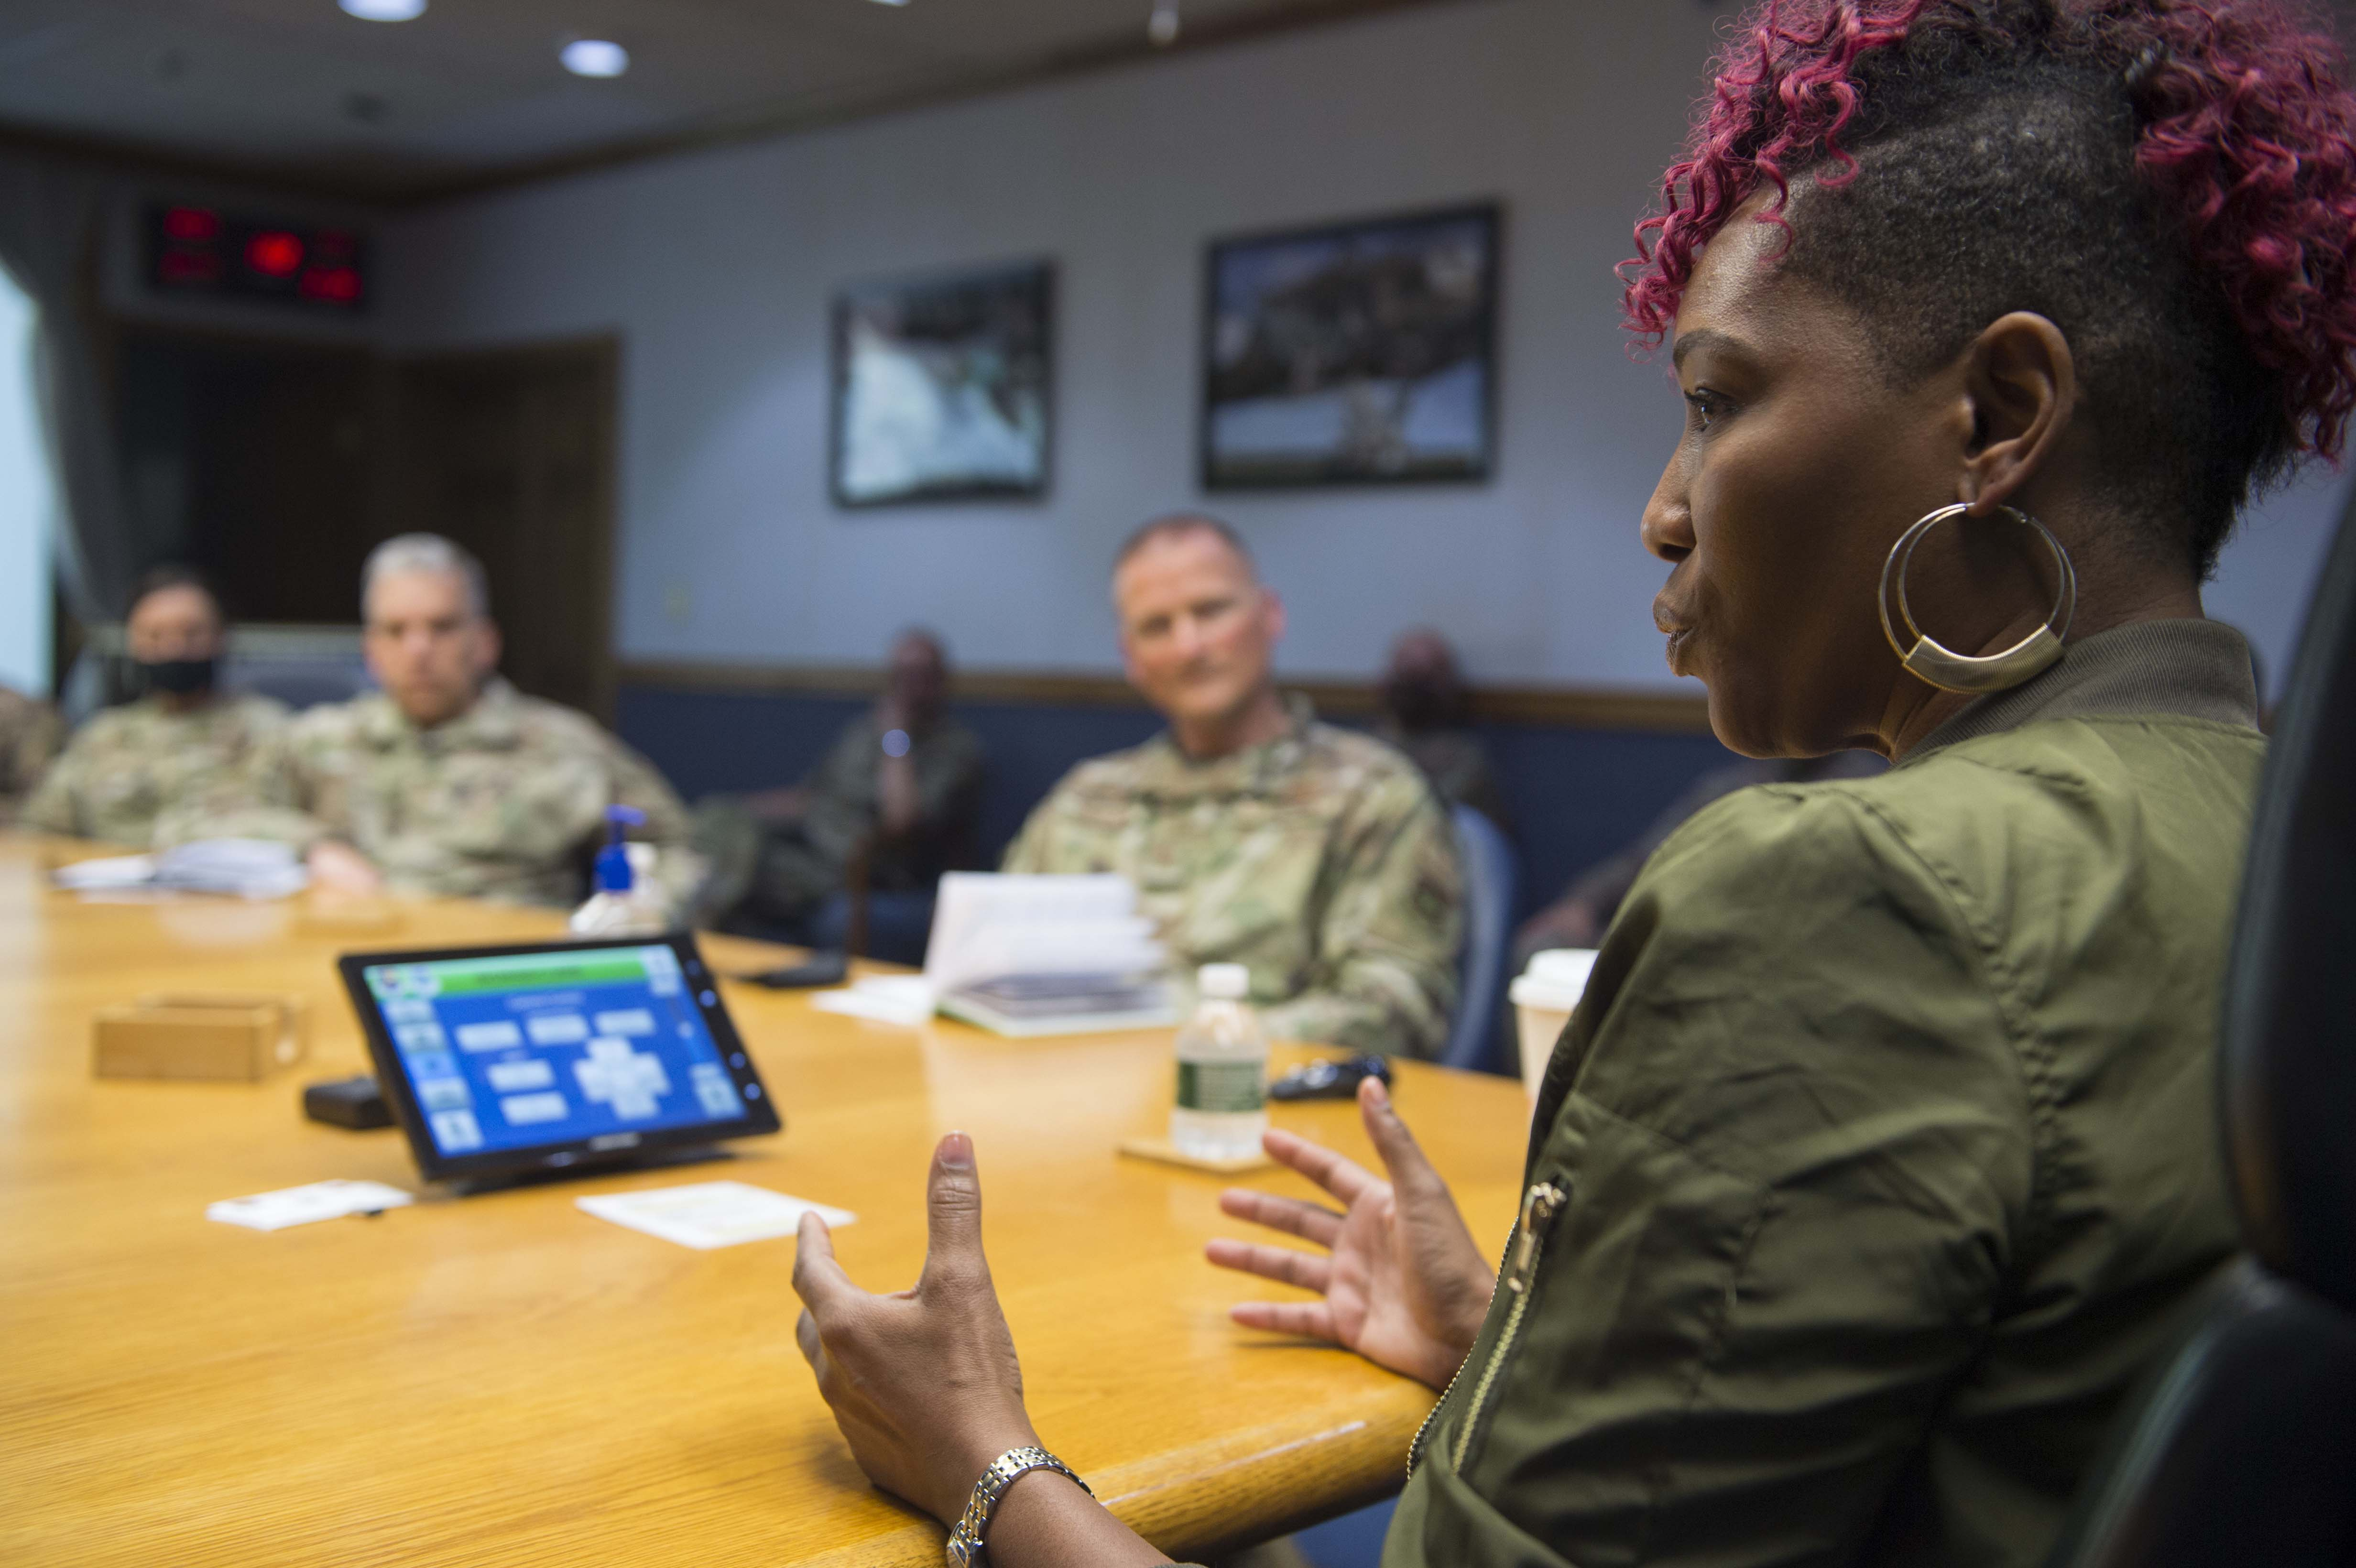 Caption: Risha Grant, an inclusion and bias expert, holds a closed-door discussion with leaders at Joint Base McGuire-Dix-Lakehurst, N.J. June 30. Throughout the summer, the Air Force has been holding town halls and trainings about racial injustice., Credit: Sarah Brice / U.S. Air Force